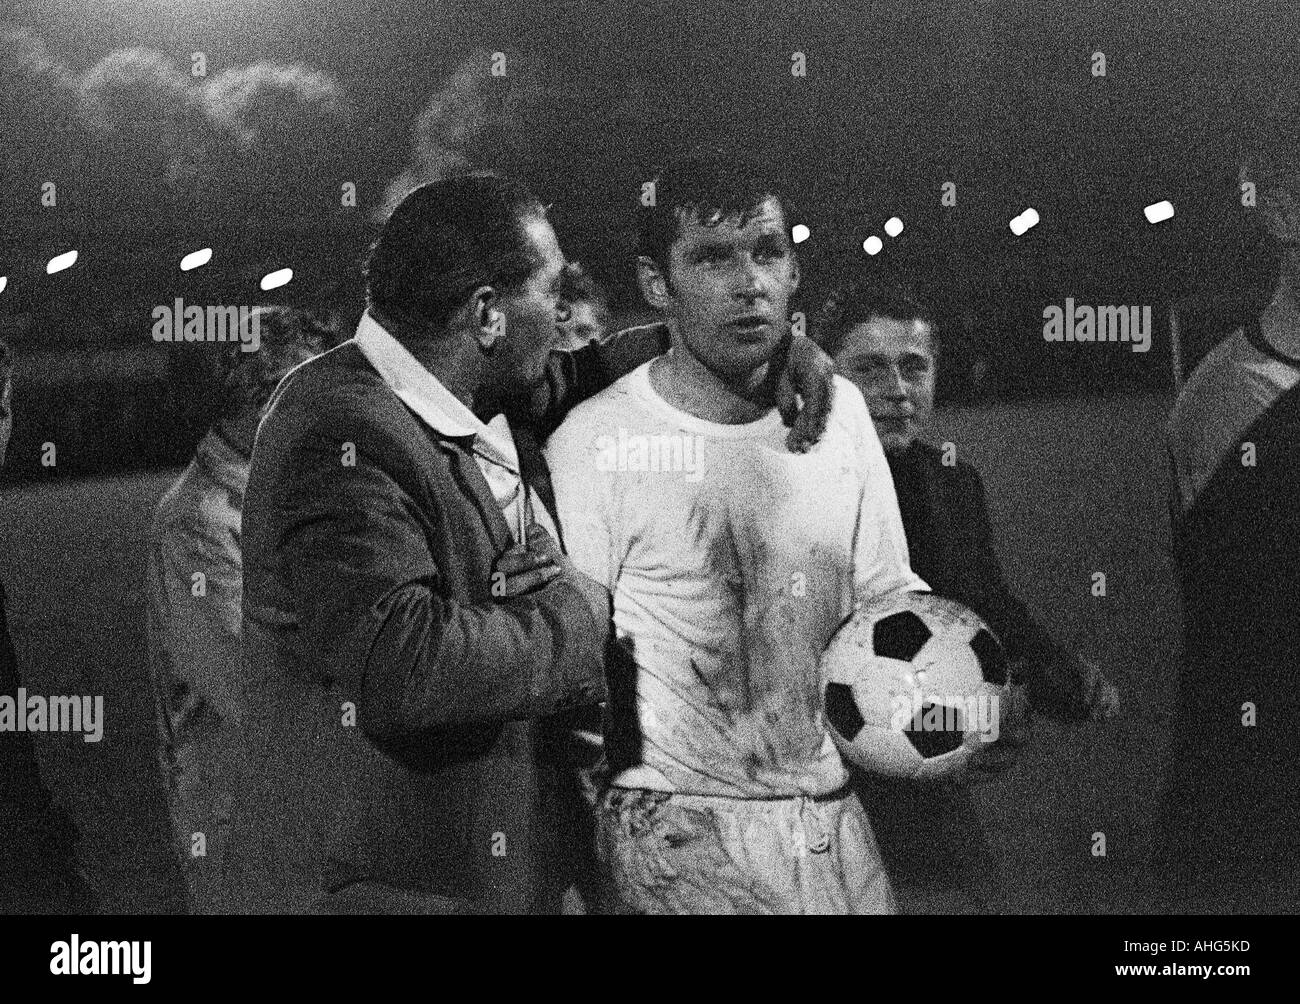 football, Bundesliga, 1968/1969, Borussia Dortmund versus Alemannia Aix-La-Chapelle 3:1, Rote Erde Stadium, football player, Lothar Emmerich (Dortmund) with a football fan - Stock Image